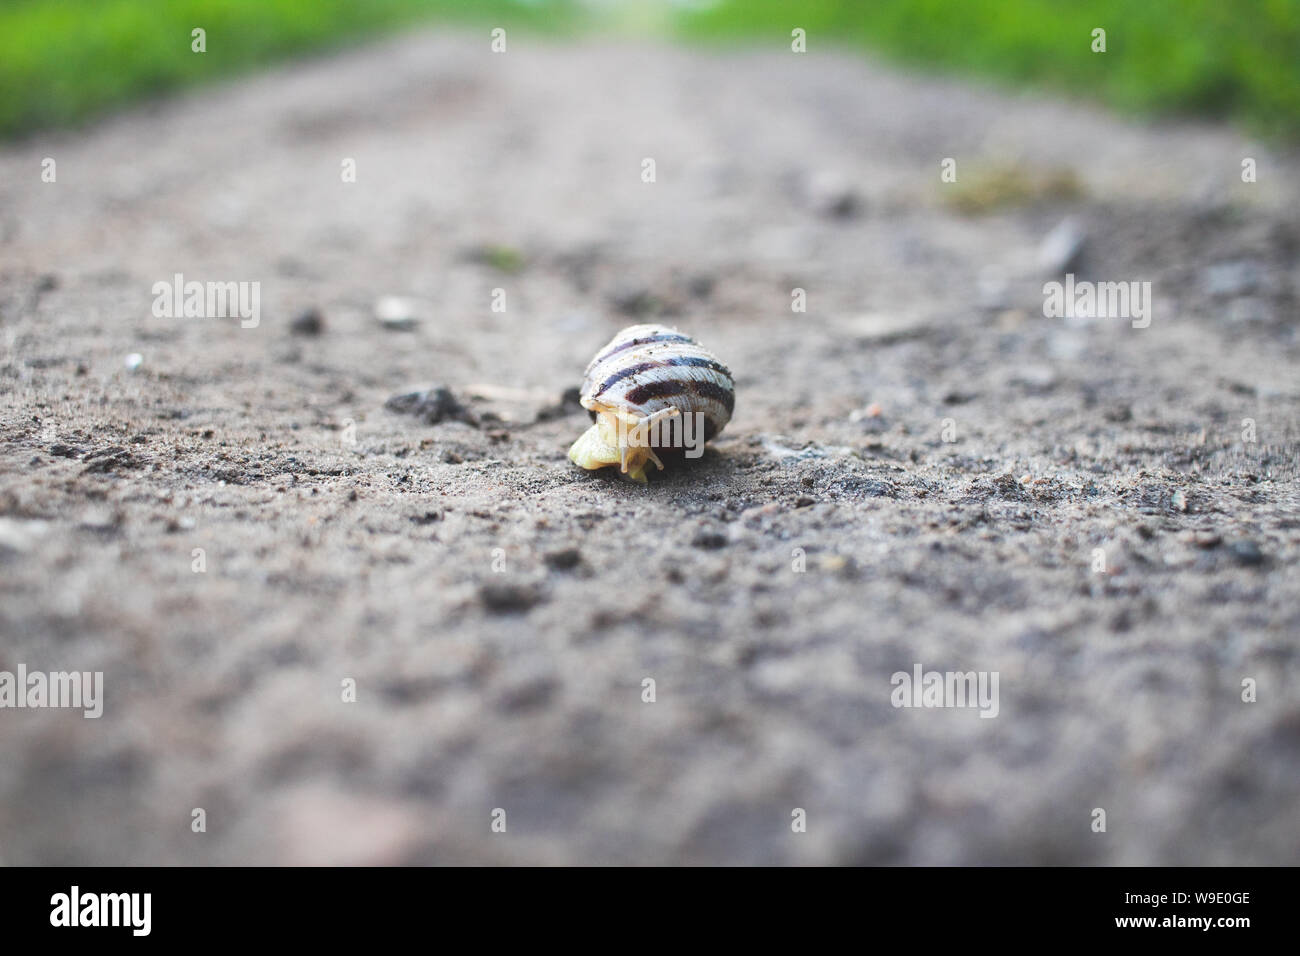 Background and foreground in defocus. A snail crawls on an asphalt road. Stock Photo